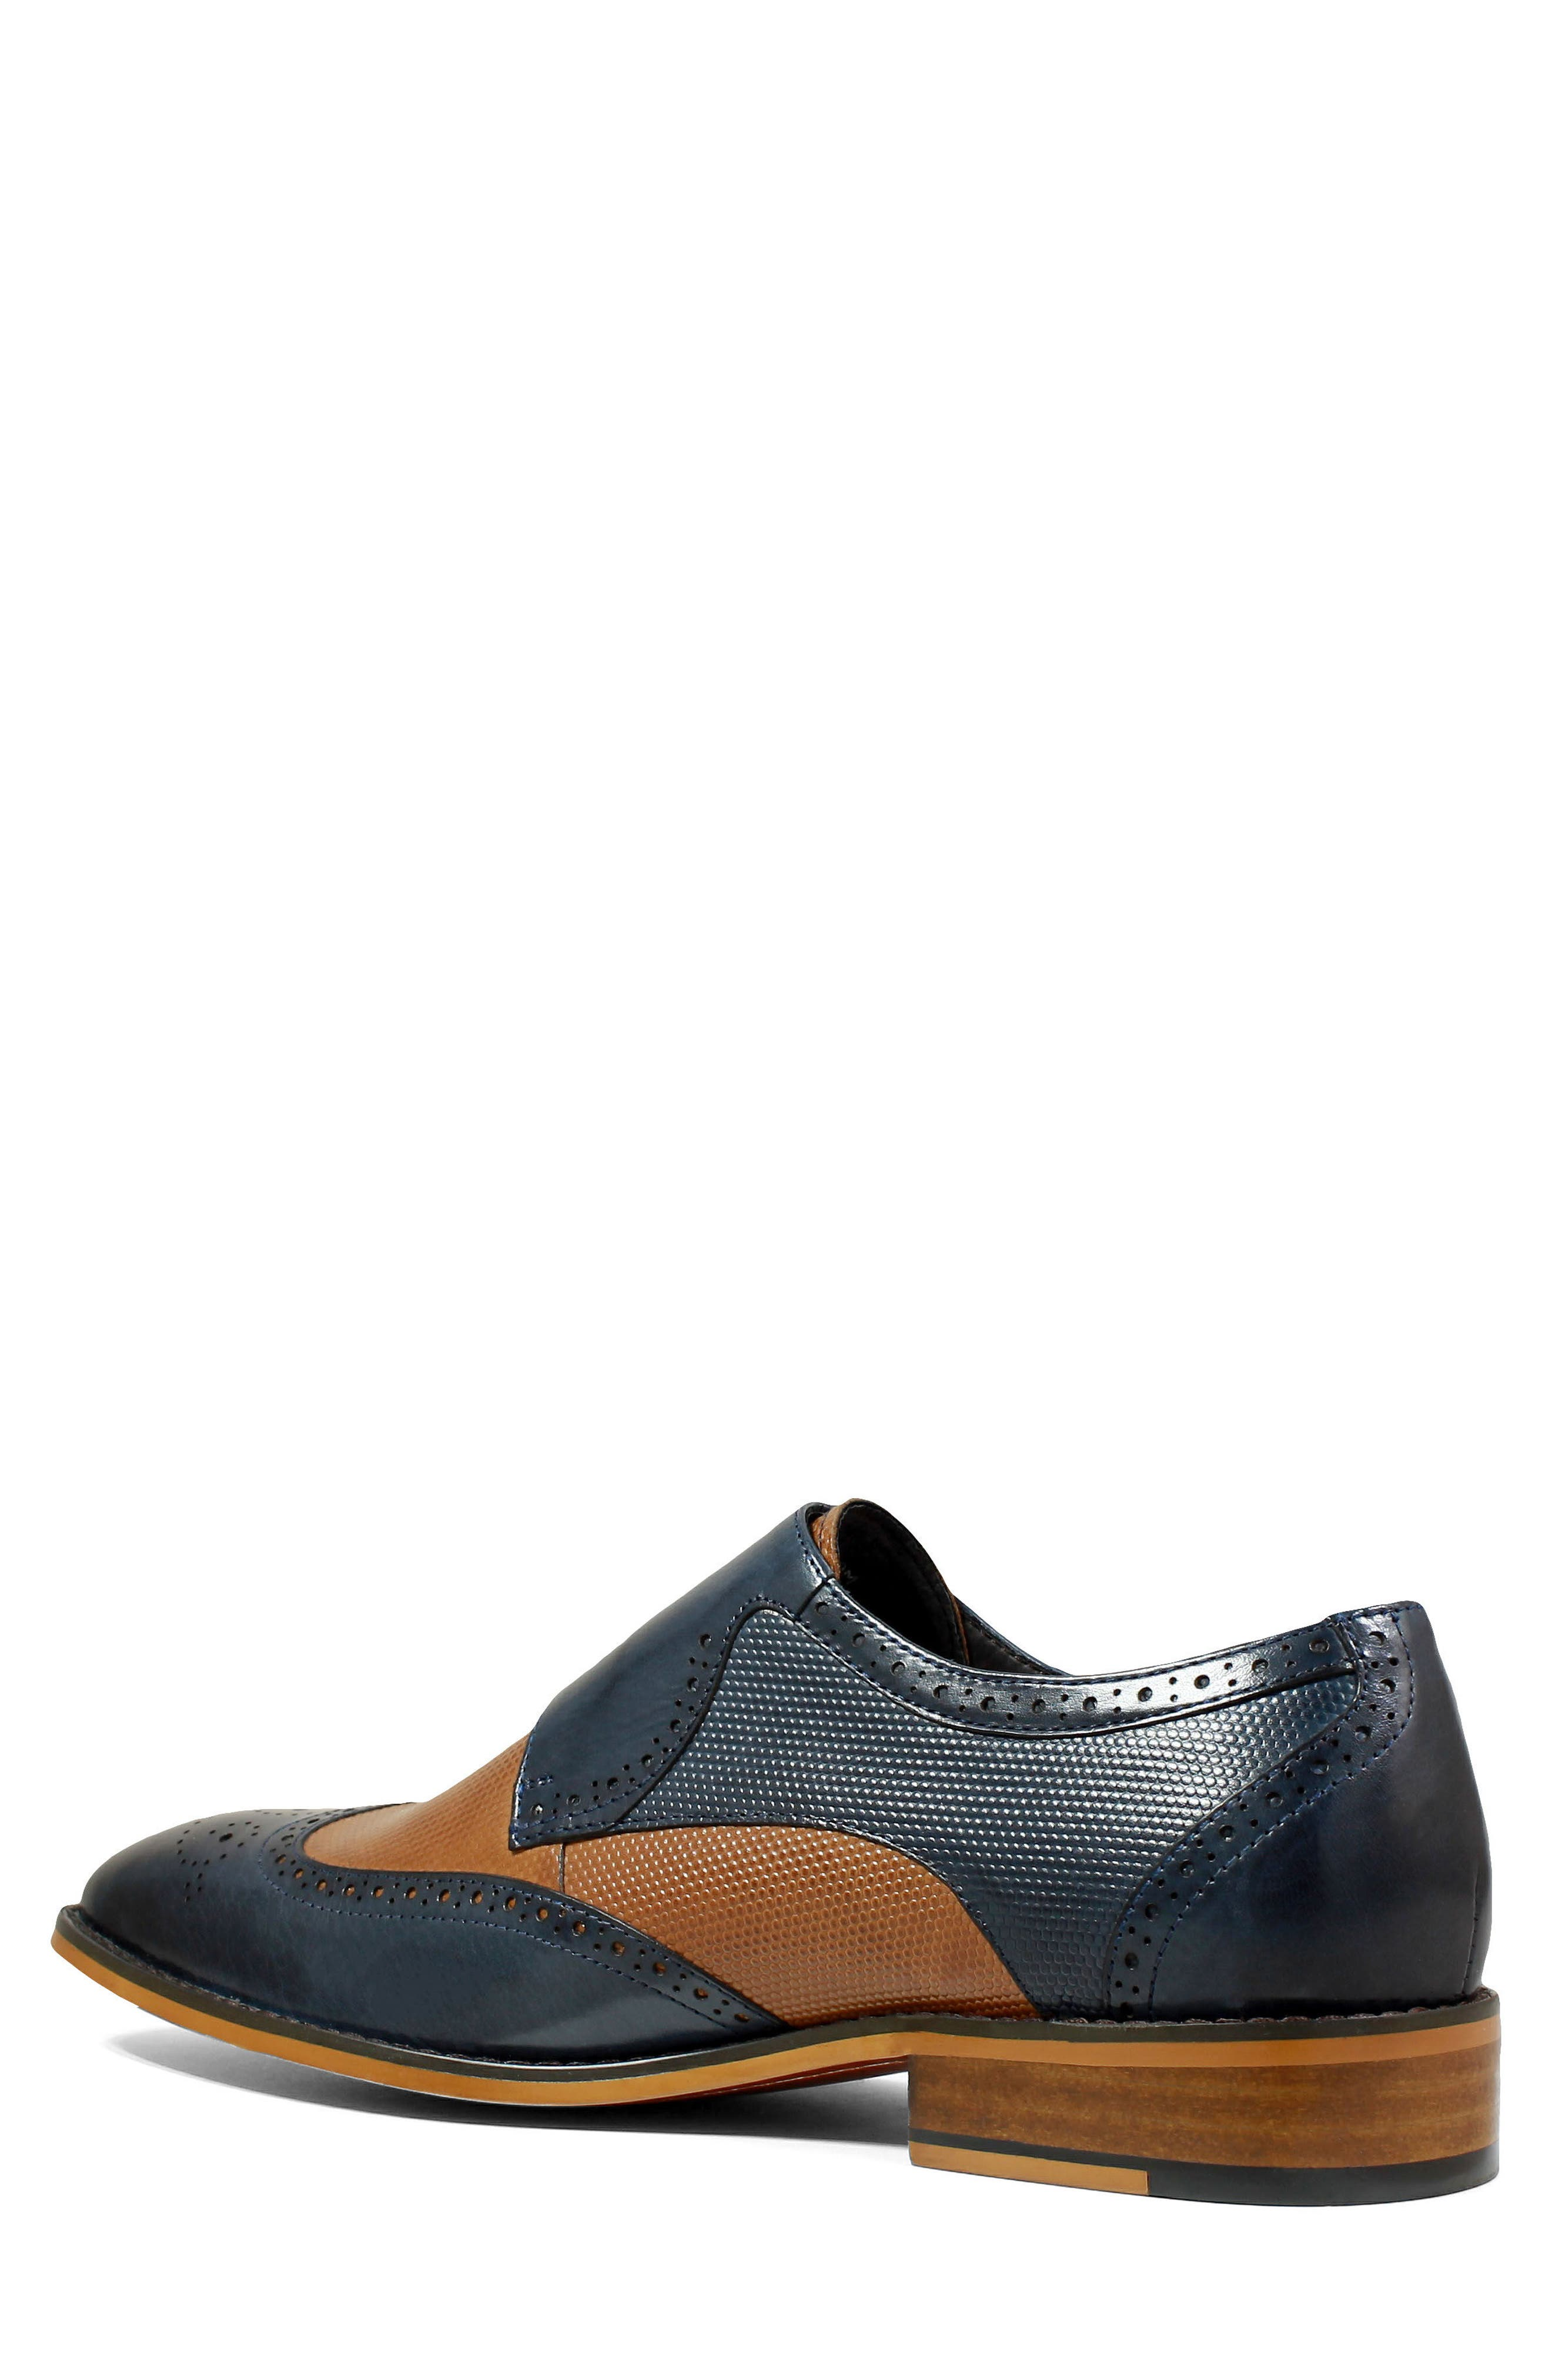 STACY ADAMS, Lavine Wingtip Monk Shoe, Main thumbnail 1, color, NAVY AND SADDLE TAN LEATHER